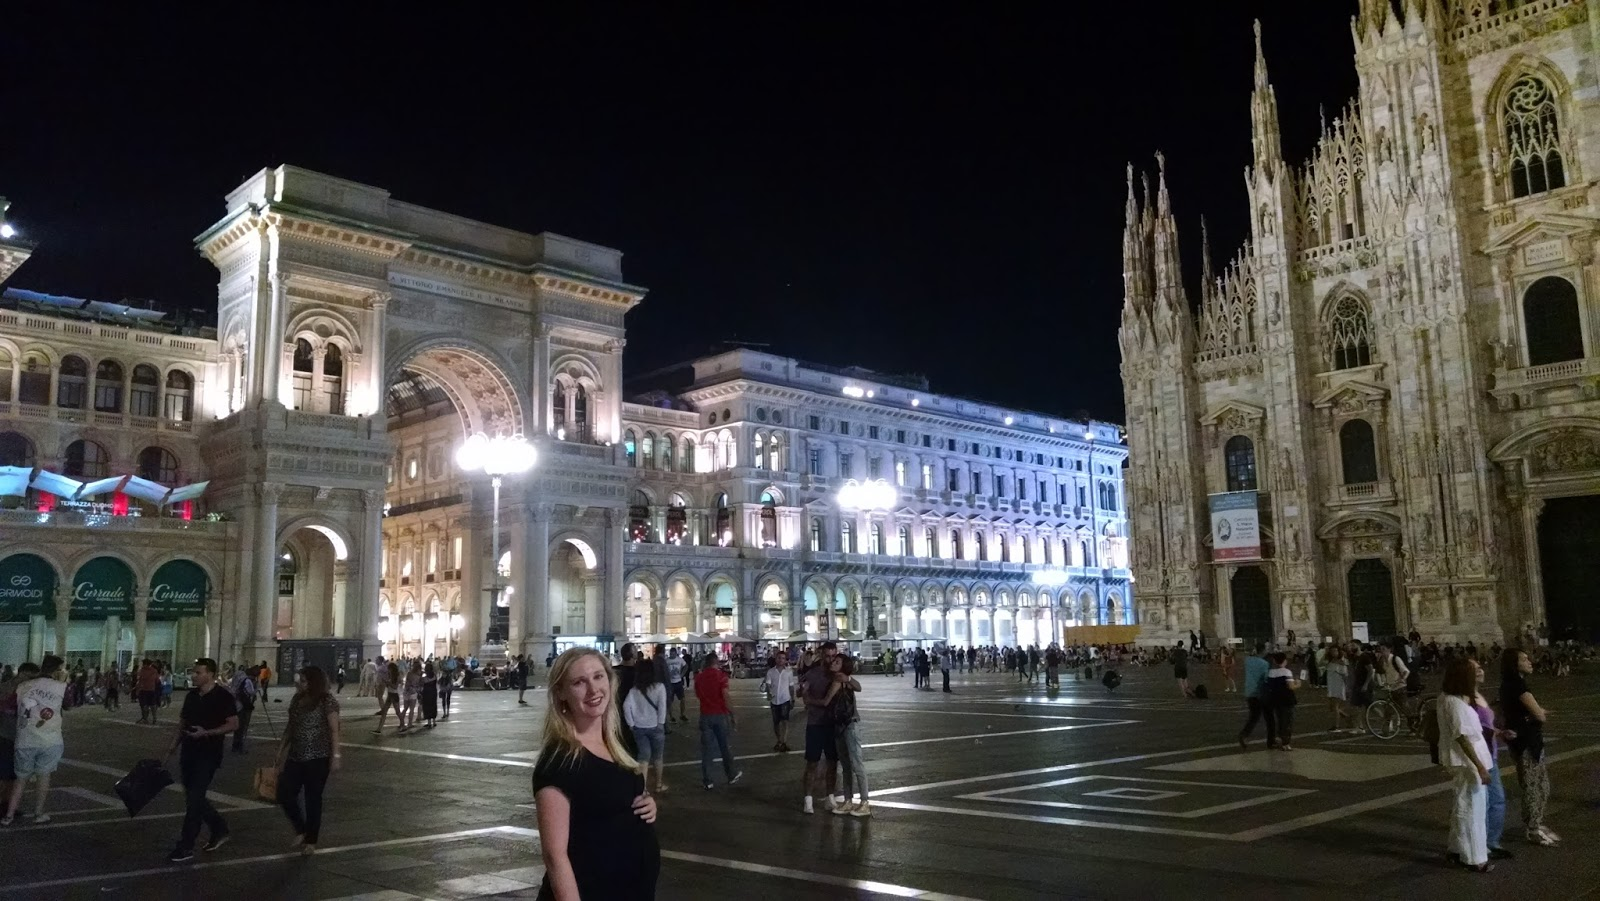 In Milan at 8 months pregnant. Baby's made of gelato, so we gave him an Italian name.